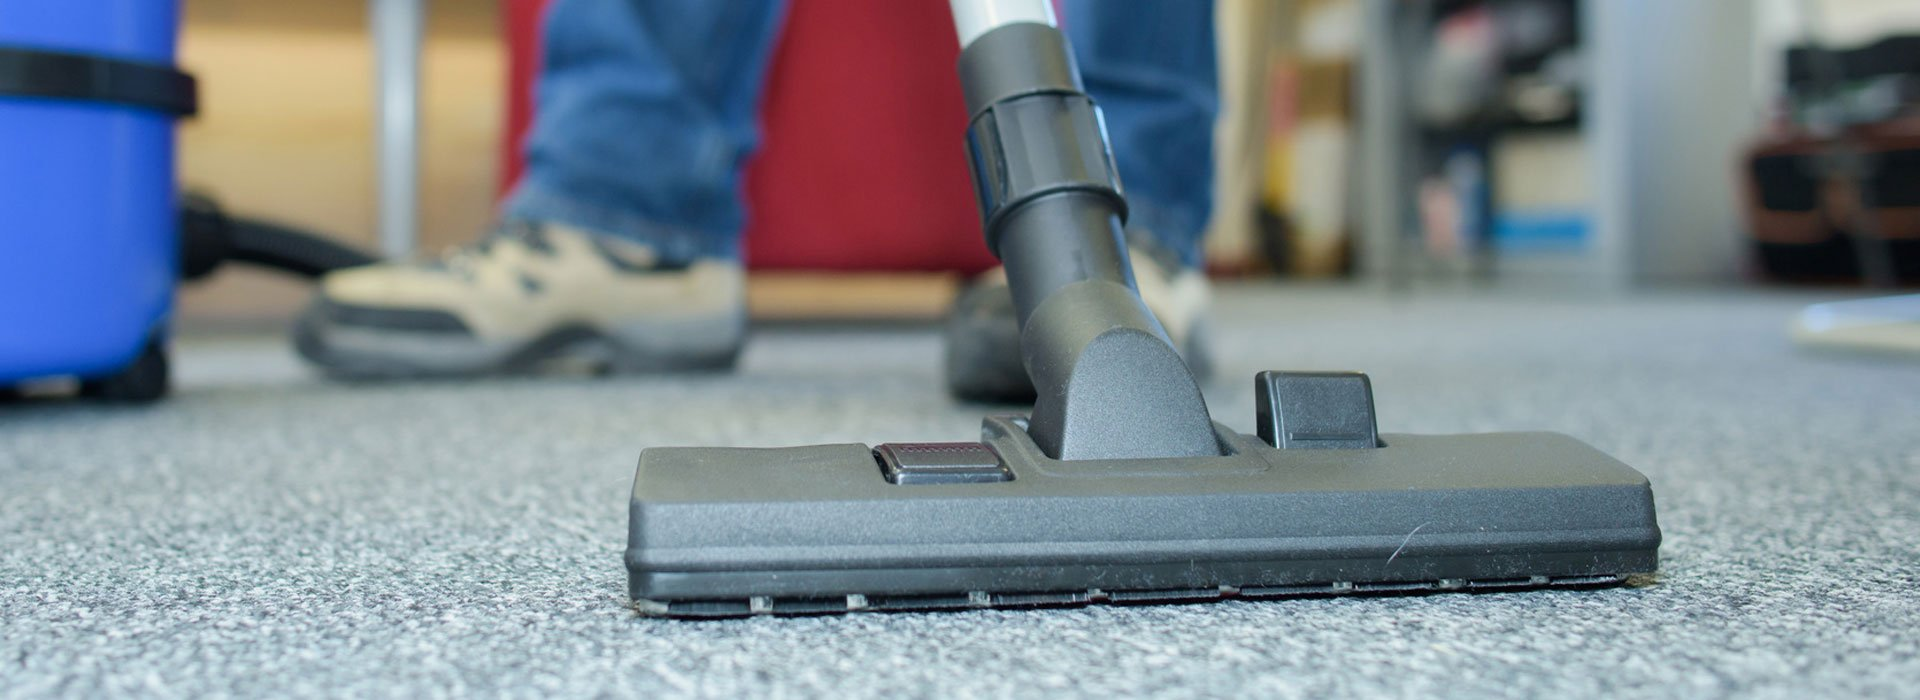 Commercial Cleaning and Janitorial Services Dallas | Superclean